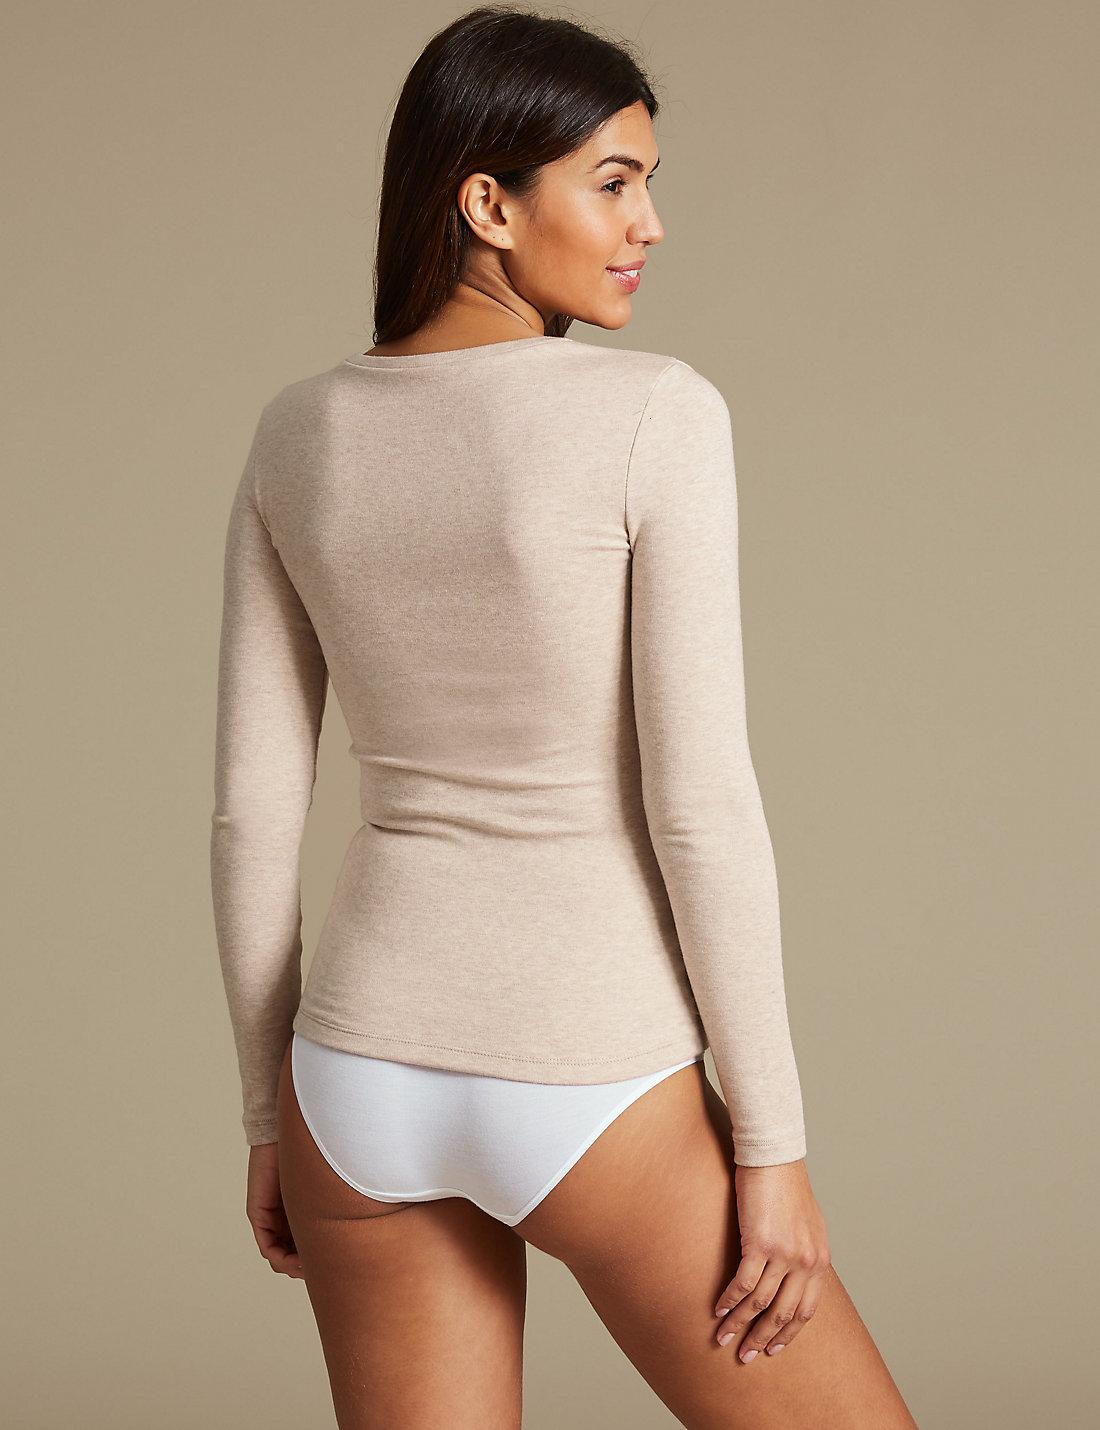 7bfa3a4a28 Lyst - Marks   Spencer Heatgentm Thermal Long Sleeve Top in Natural